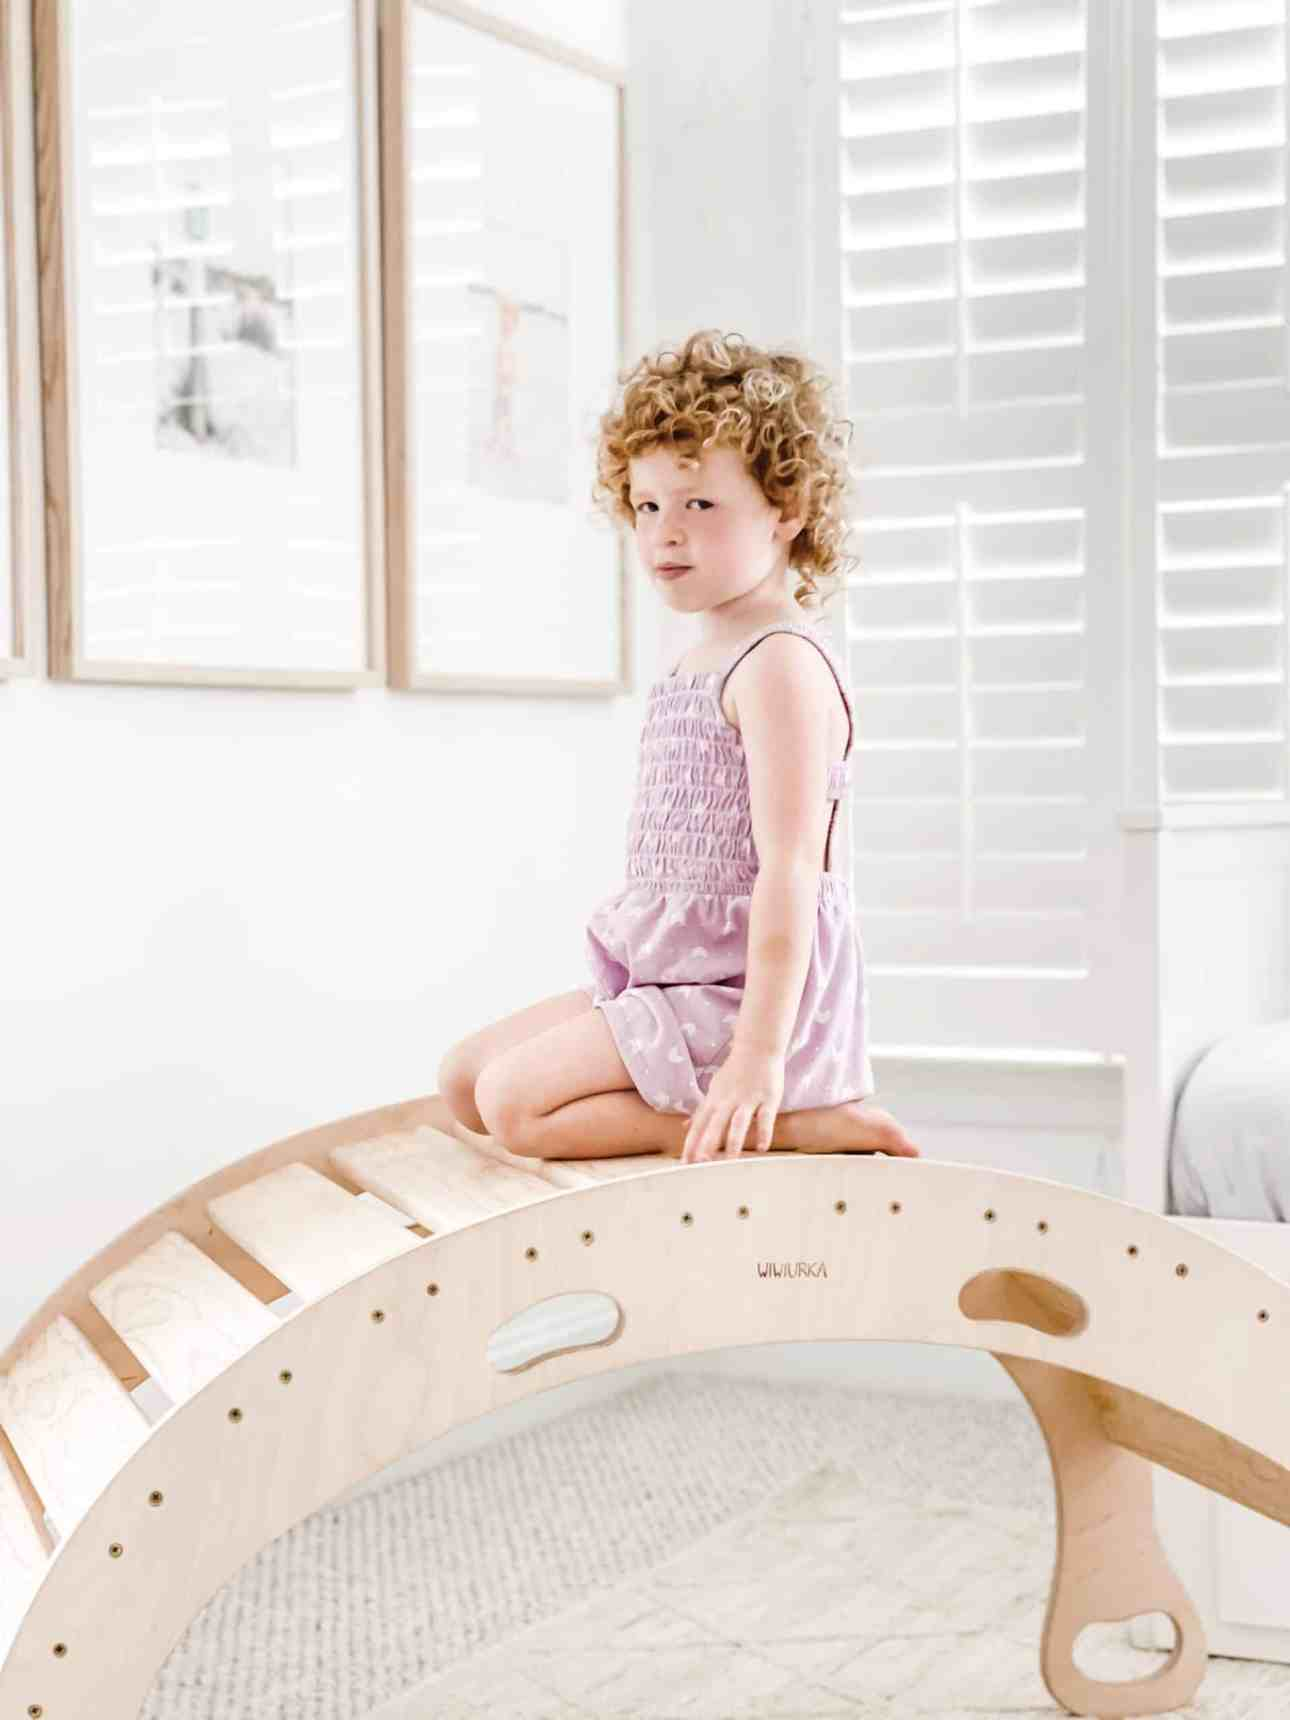 Wood climbing toy in playroom.